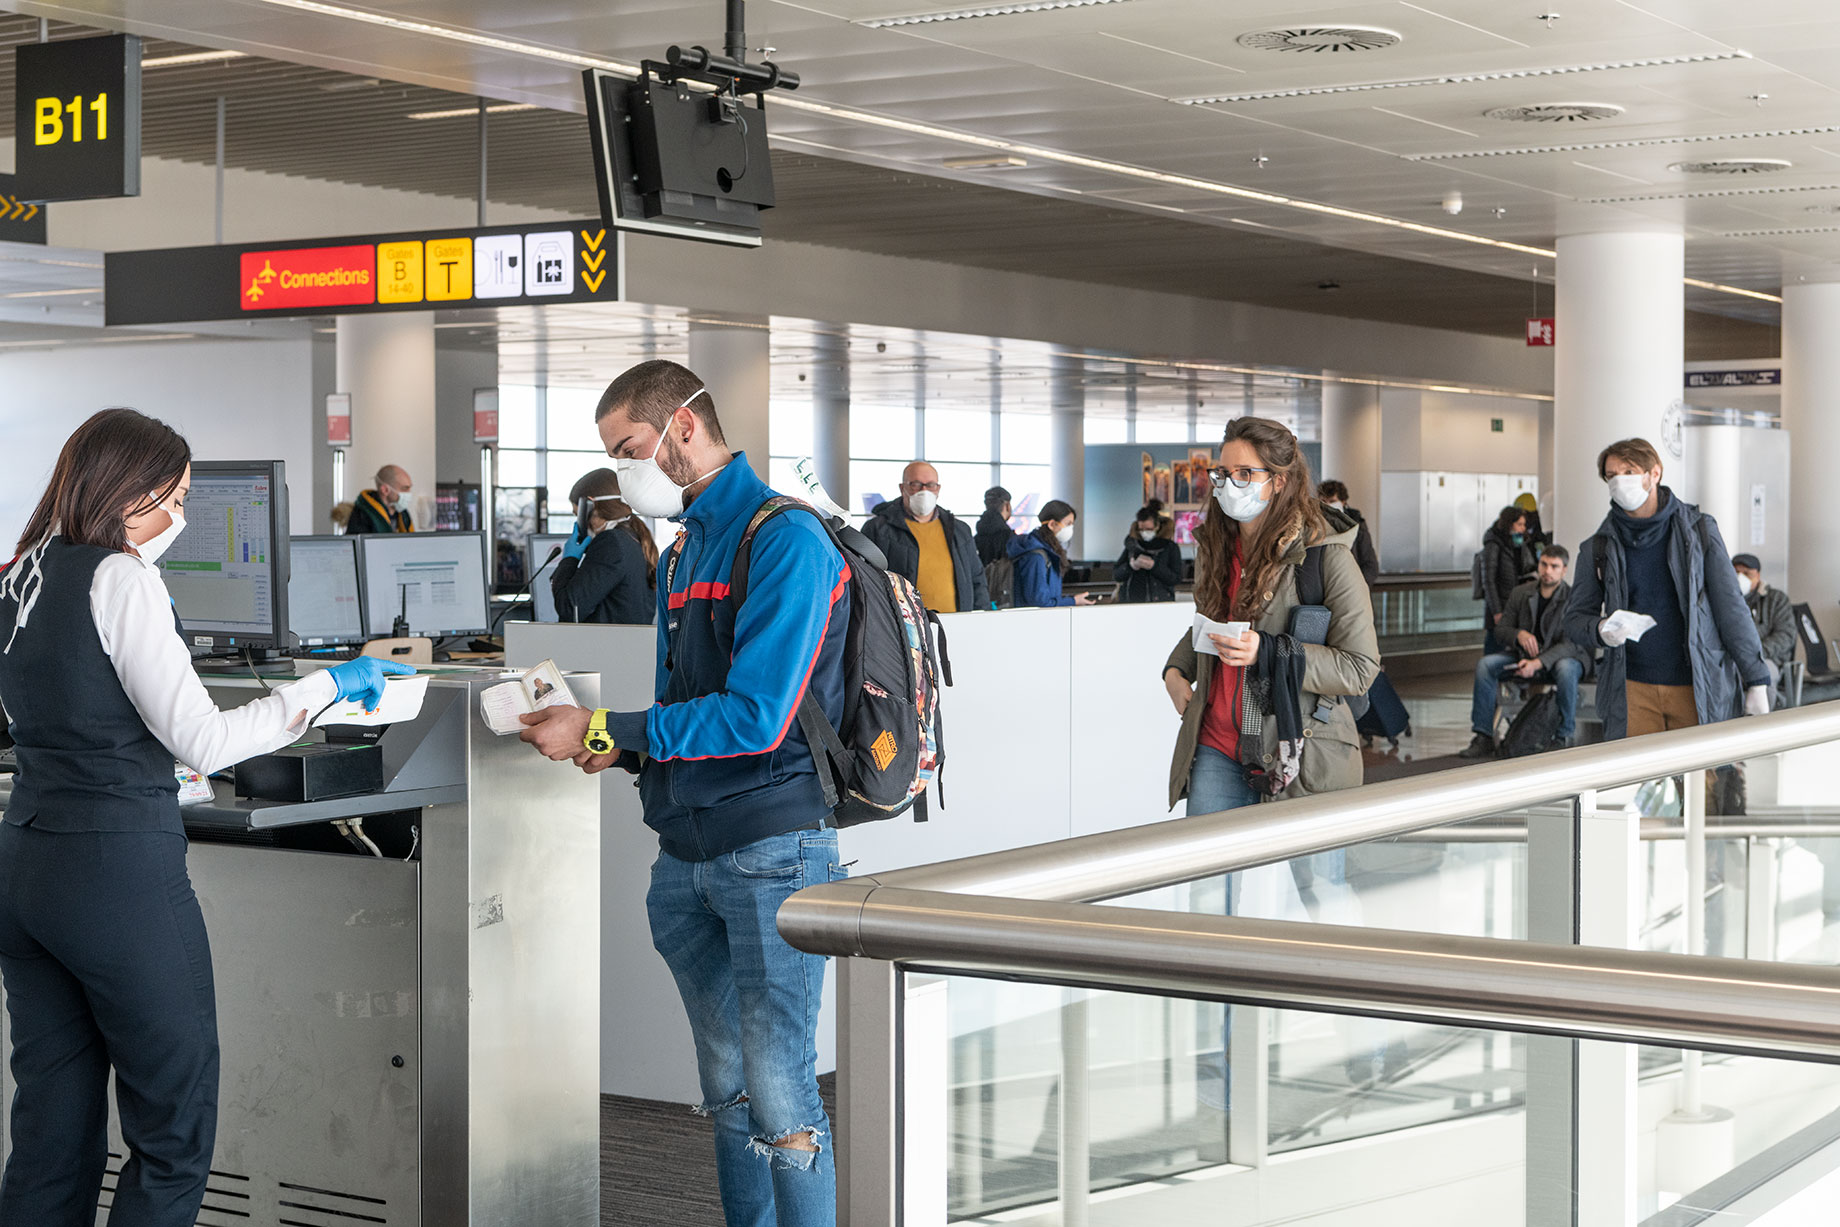 Brussels Airport distributes face masks to passengers and staff